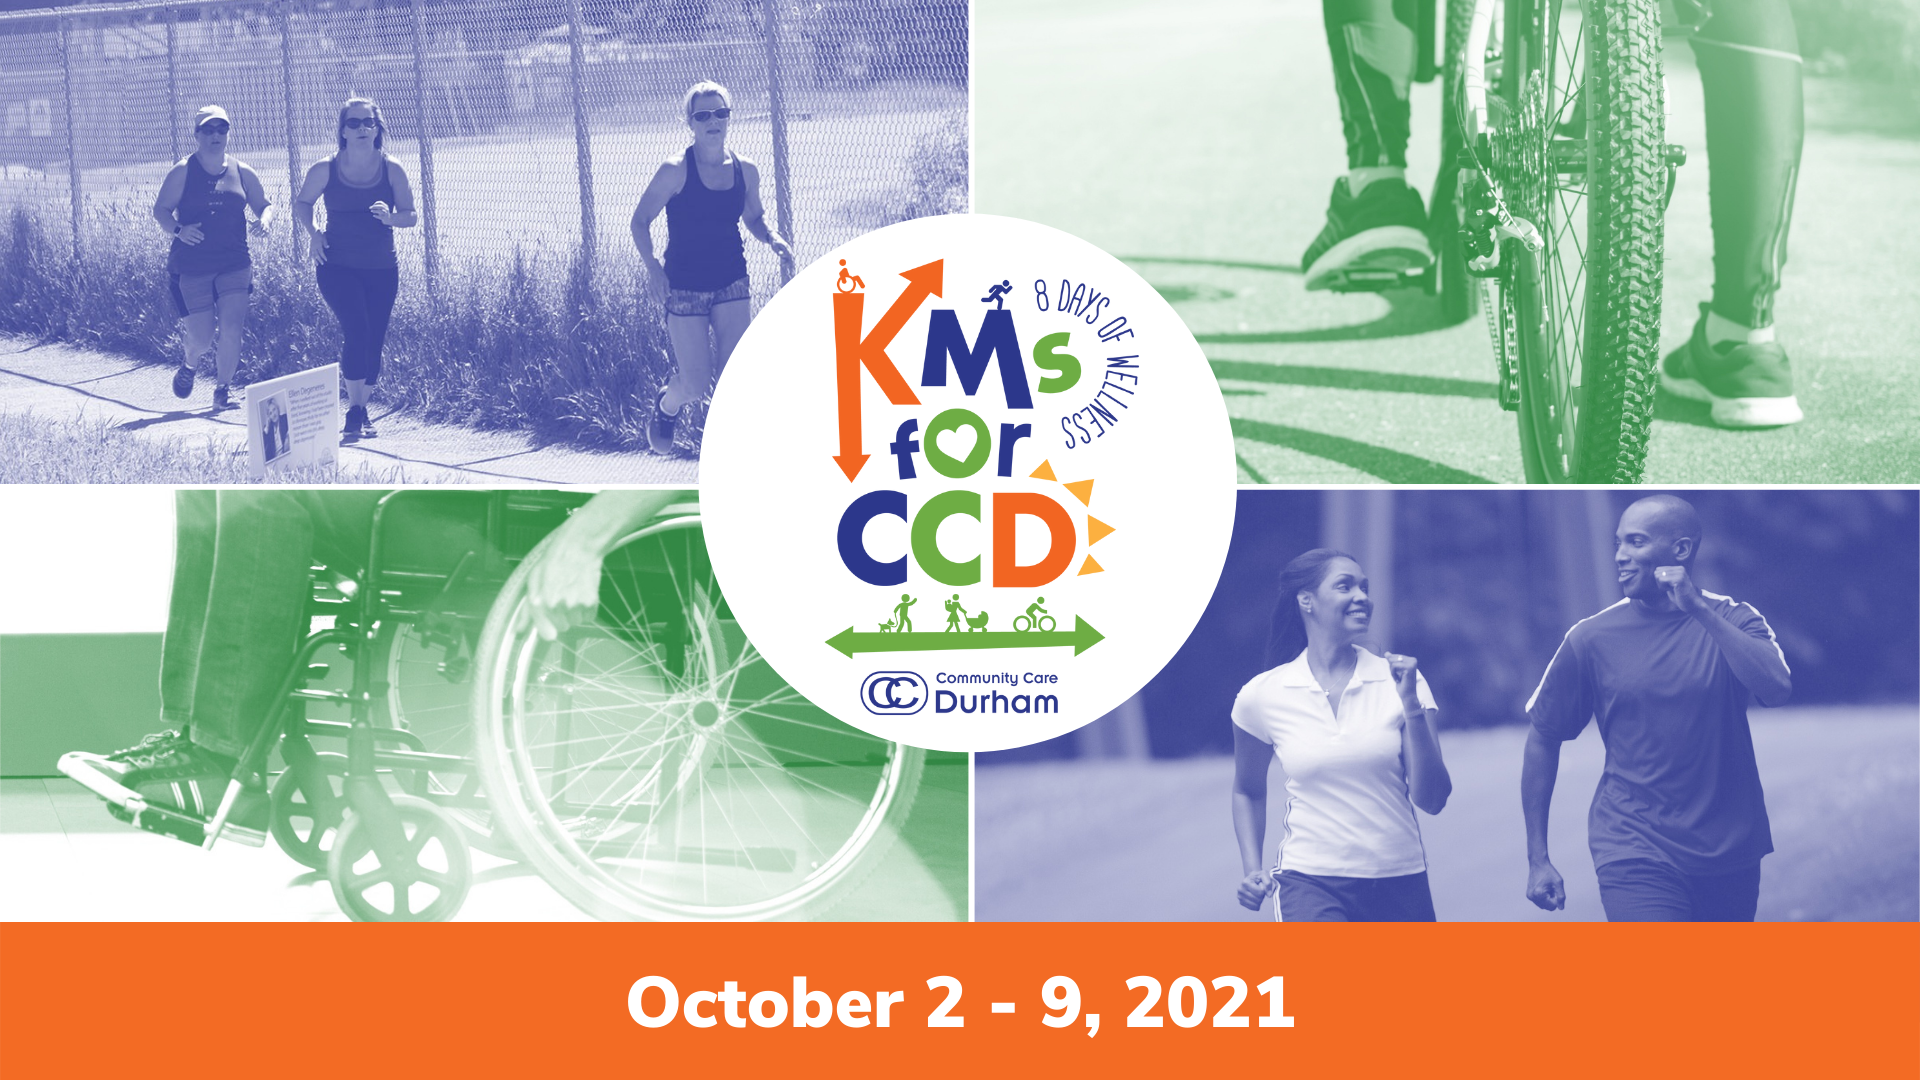 """KMs For CCD event graphic. Top left image shows three people running. Top right image shows cyclist's feet on pedals. Bottom left image shows person's hands on the wheels of a in wheelchair. Bottom right image shows two people running or speed walking. KMs for CCD logo is in the middle and the bottom text says """"October 2 - 9, 2021."""""""